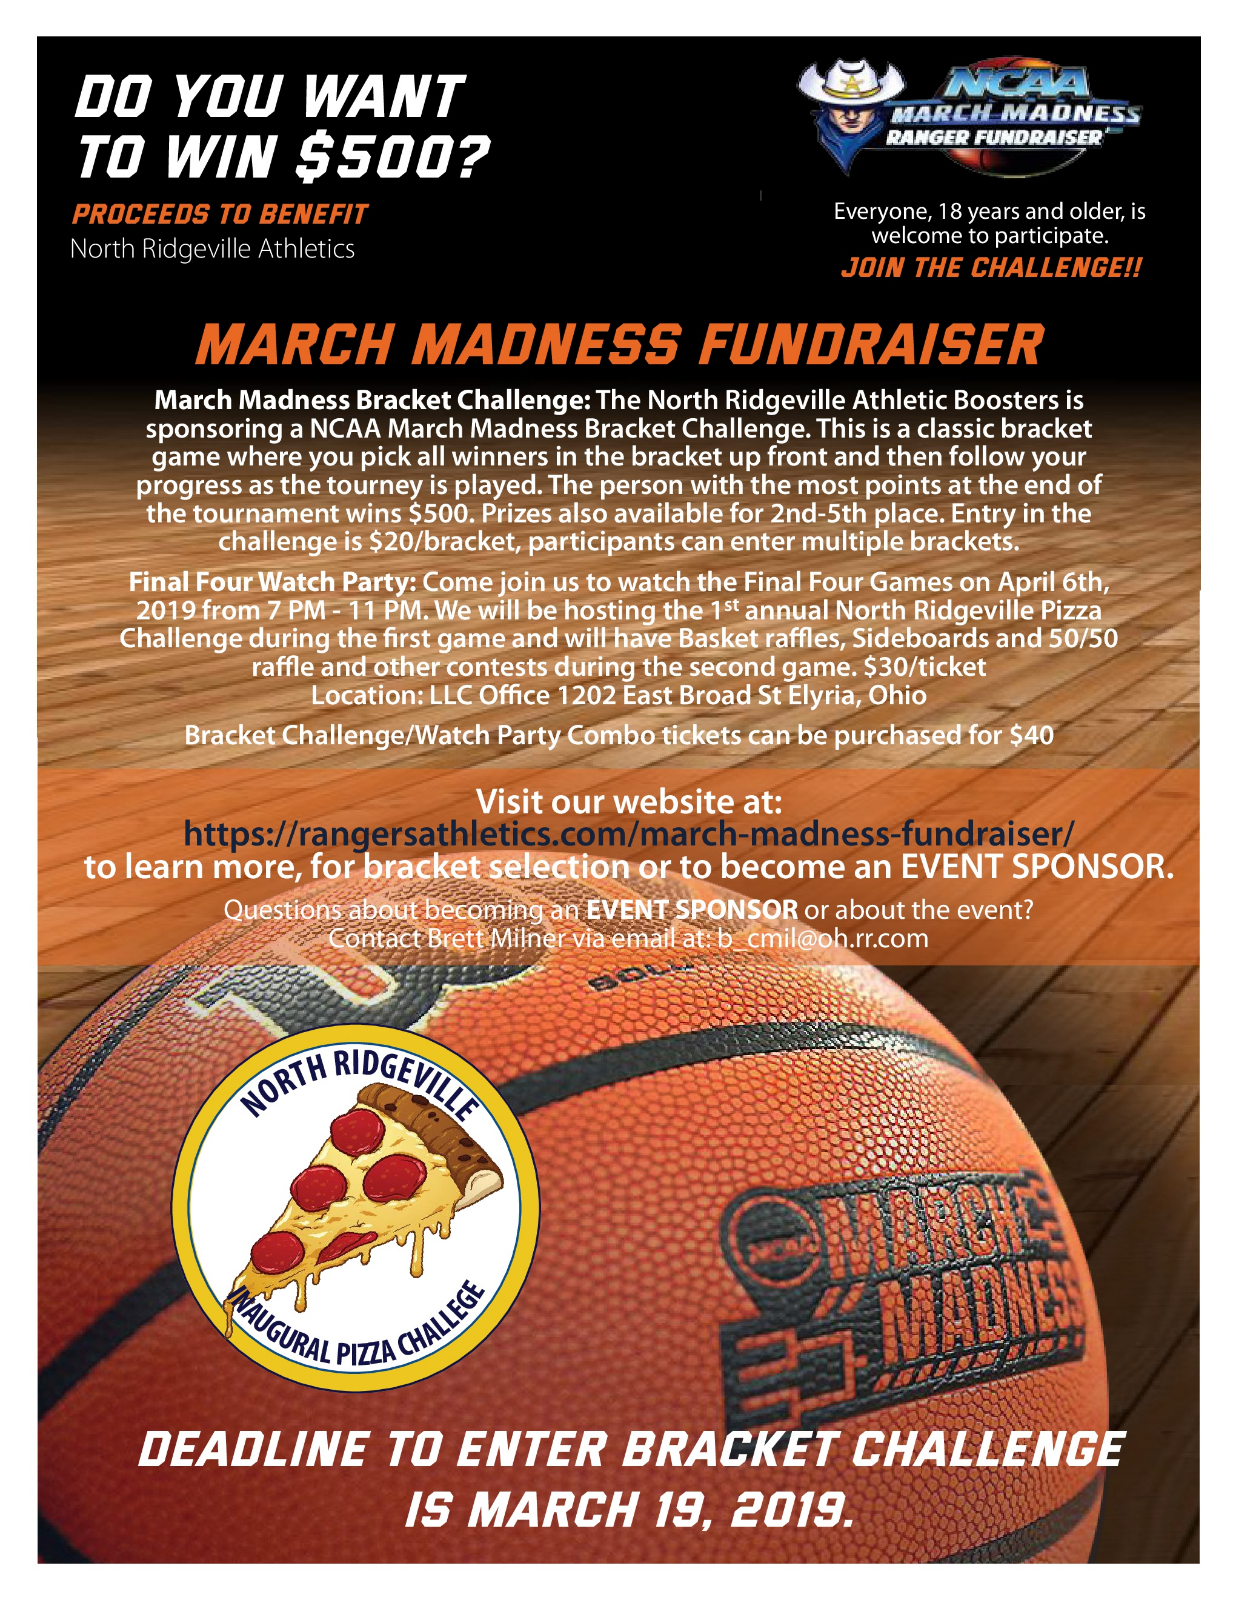 ATHLETIC BOOSTERS MARCH MADNESS FUNDRAISER